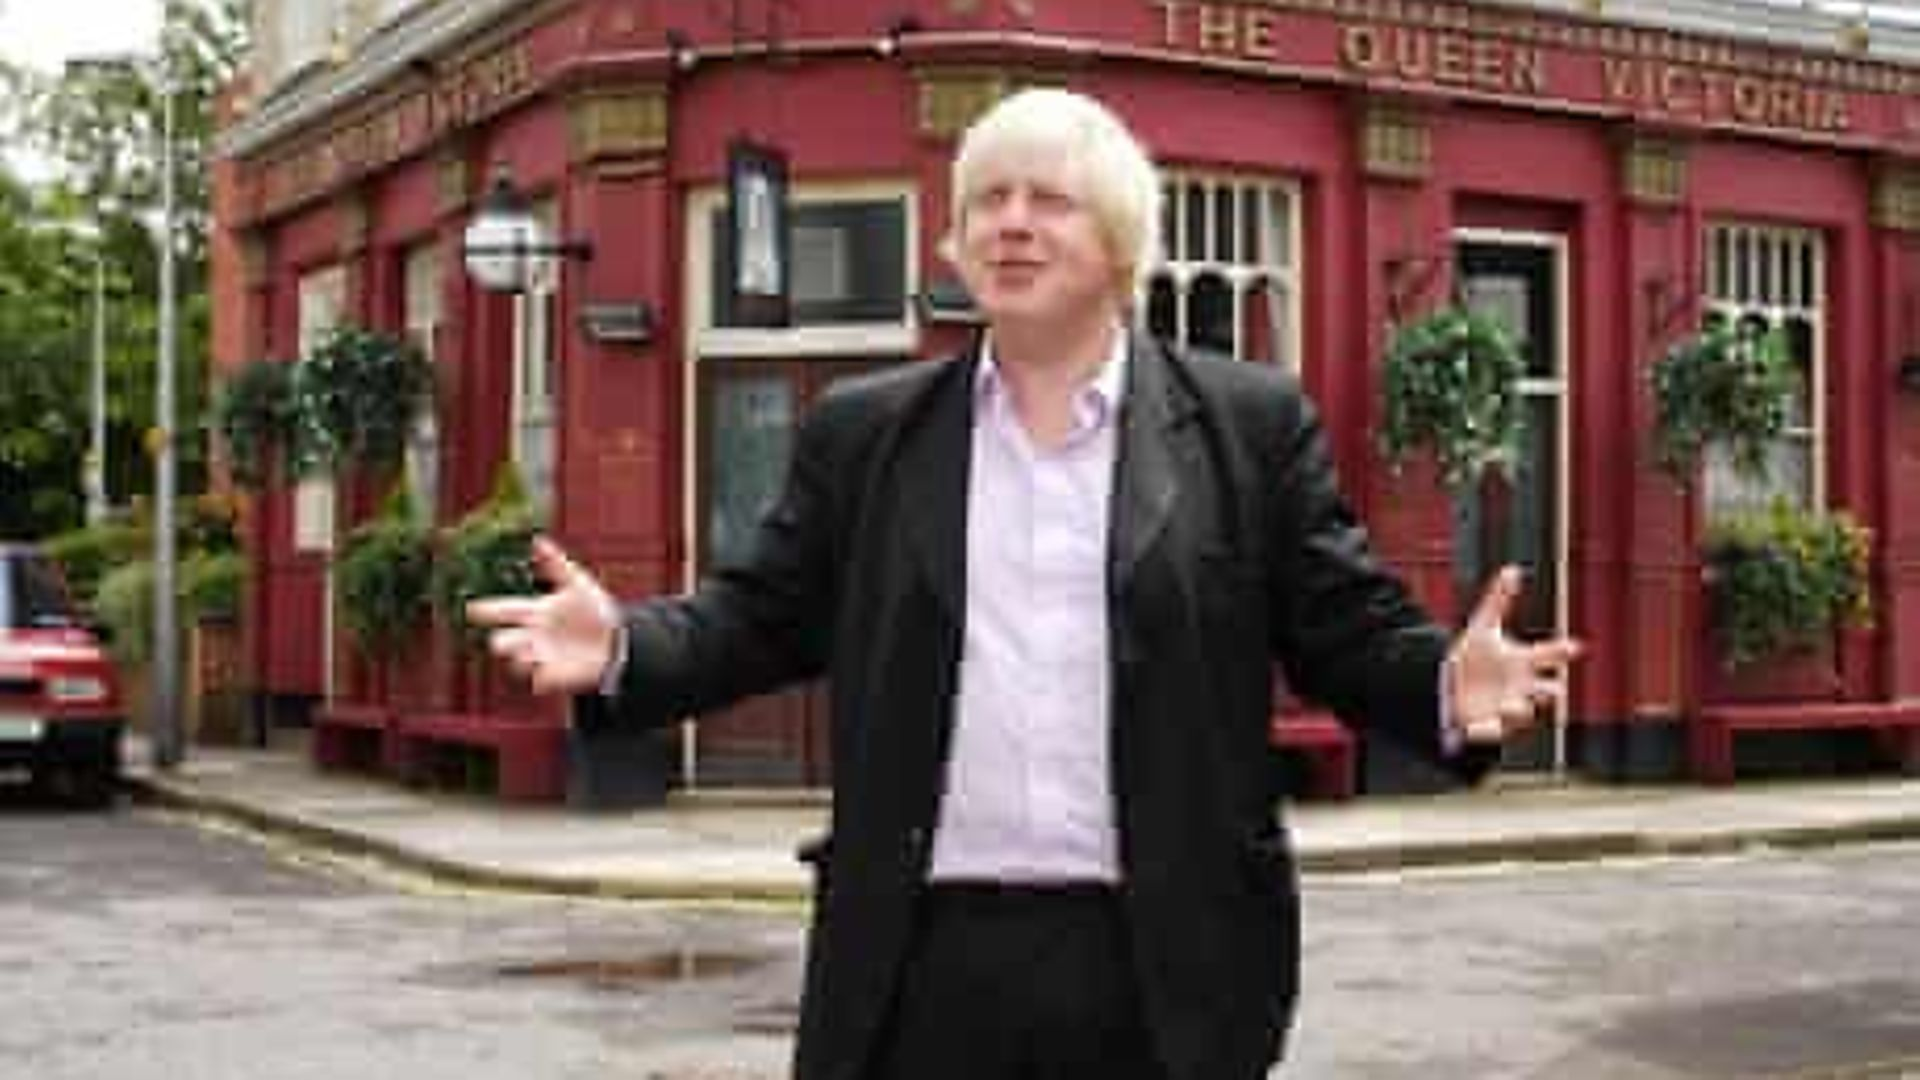 Boris Johnson in front of the Queen Vic in Albert Square in 2009, when he made a cameo appearance on EastEnders - Credit: BBC